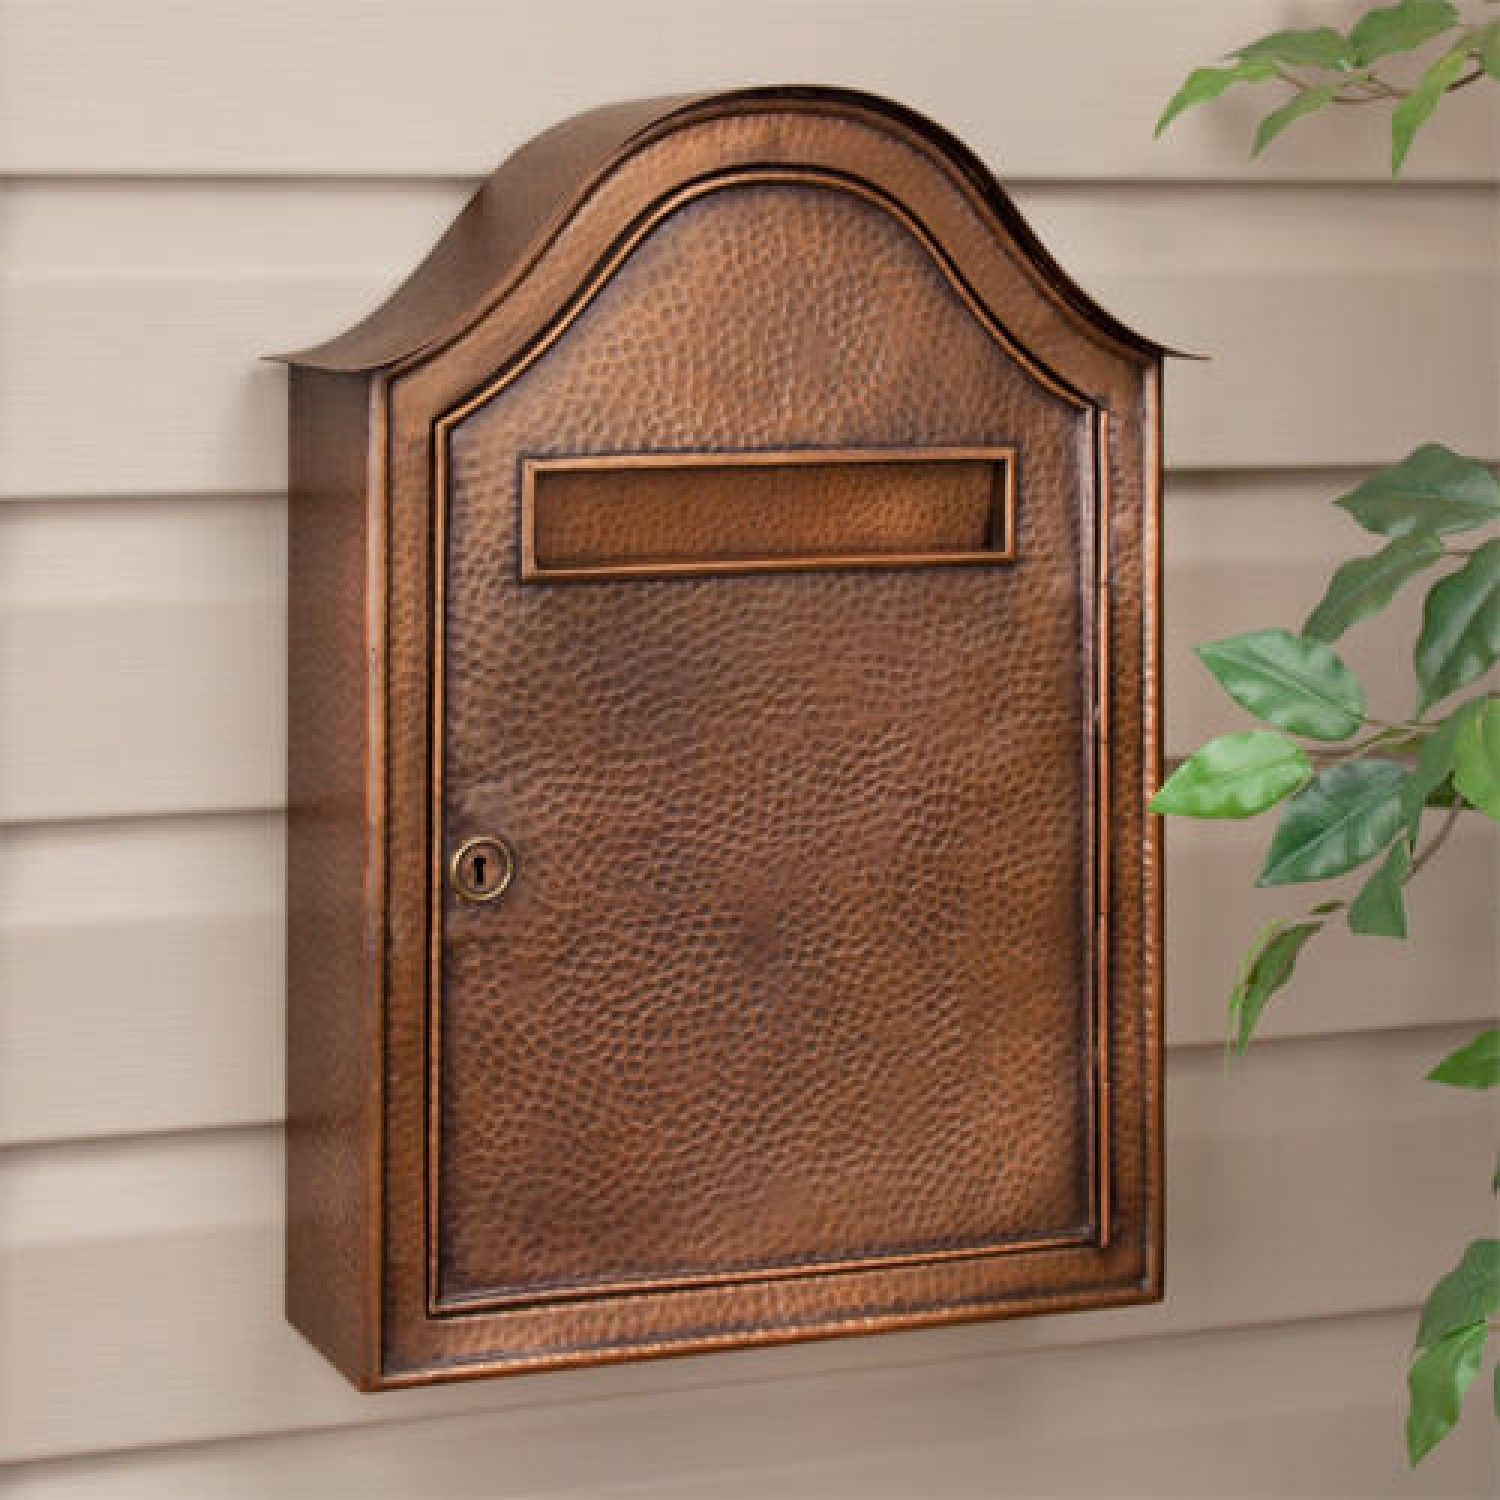 Large Hammered Copper Locking Wall Mount Mailbox Antique Copper Outdoor Wall Mount Mailbox Mounted Mailbox Copper Mailbox